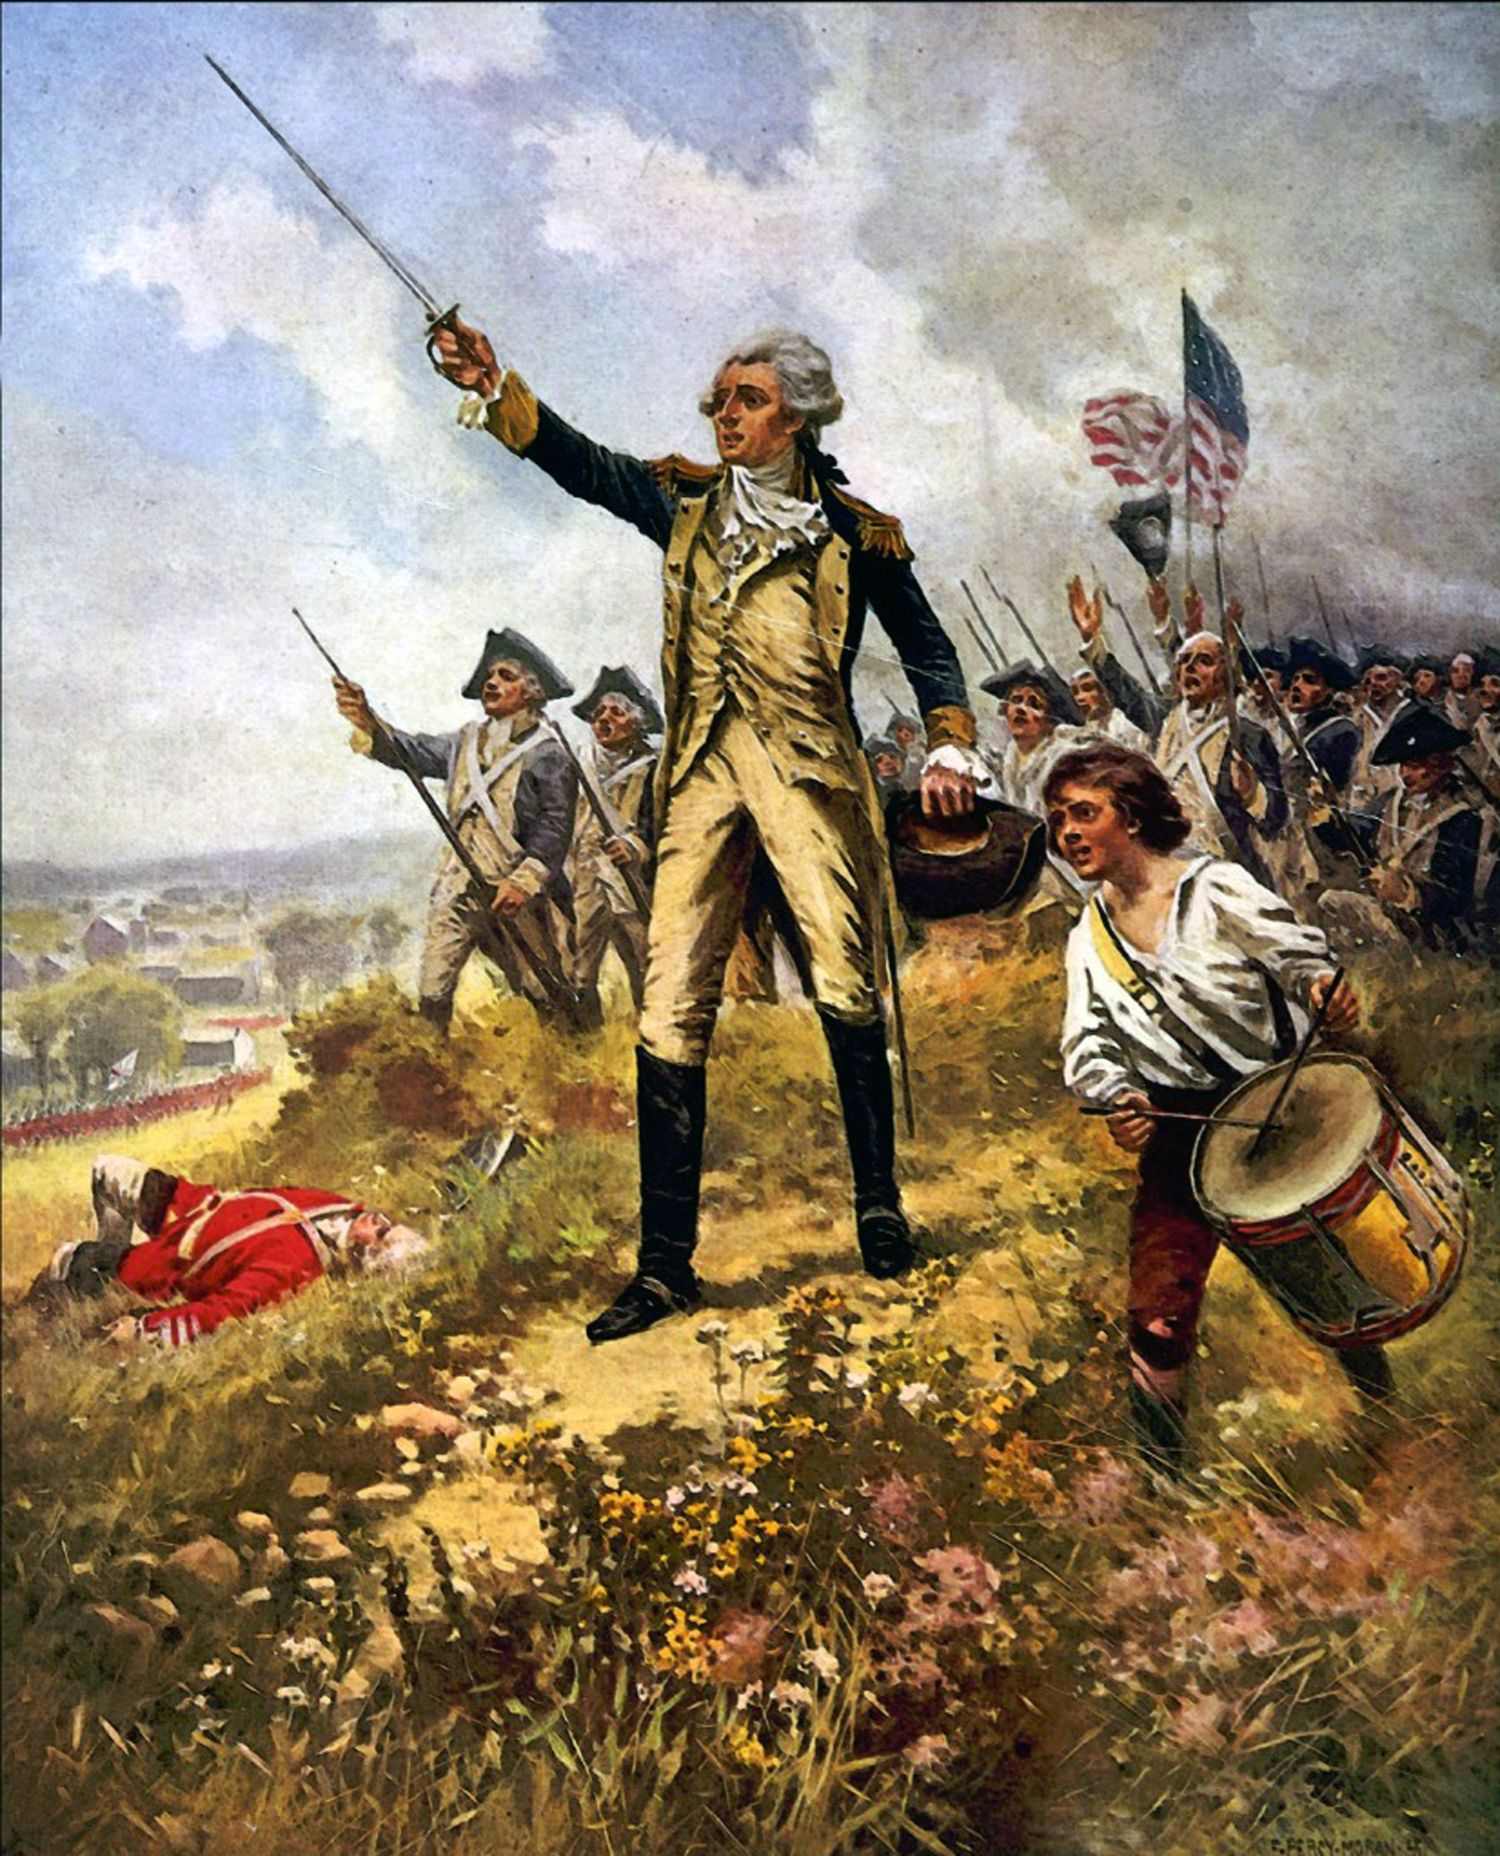 Lafayette S Baptism Of Fire American Revolutionary War American Revolution American War Of Independence